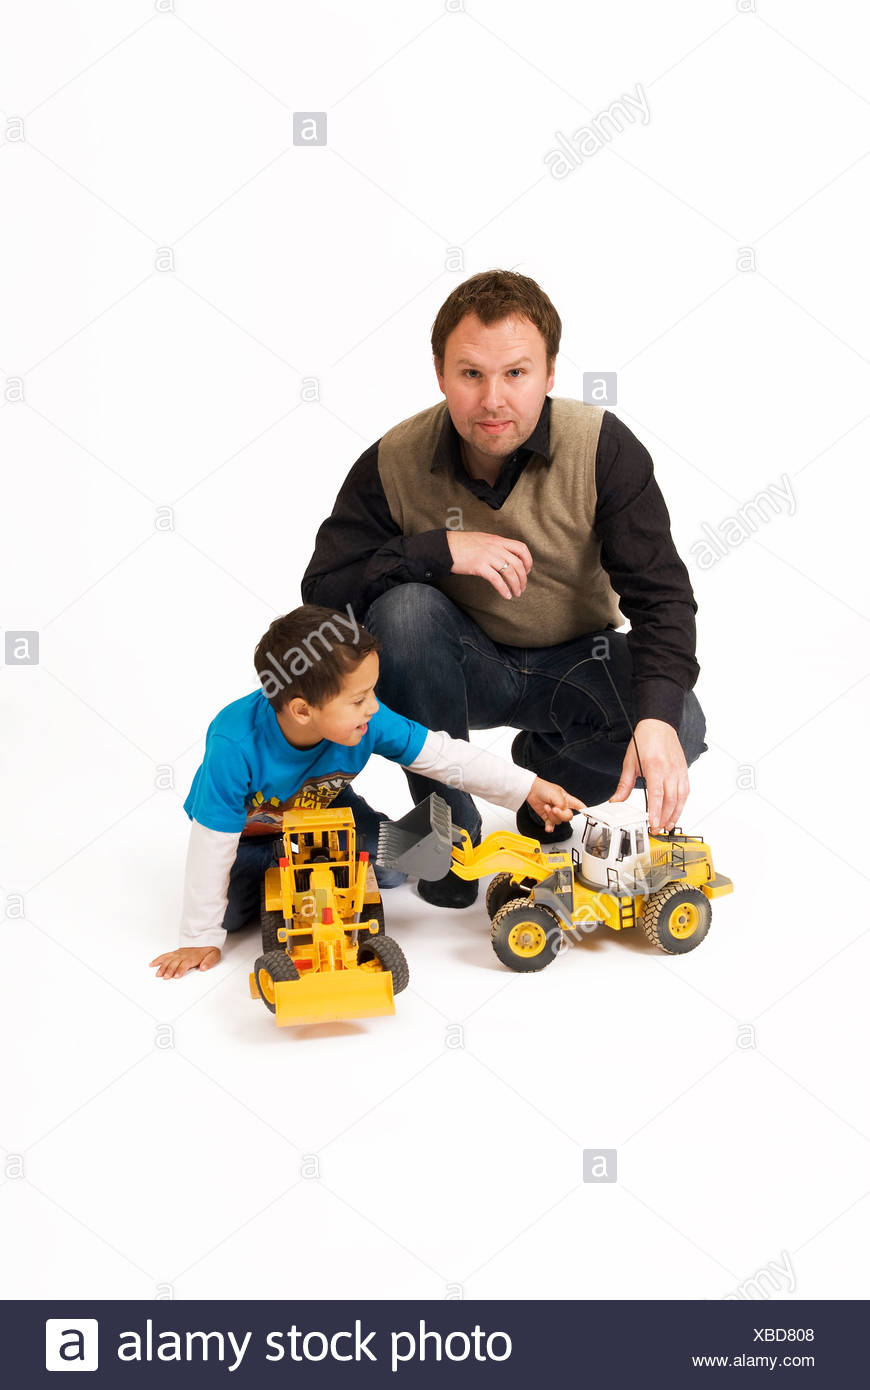 Portrait of a man by son playing with toy vehicles against white background Stock Photo